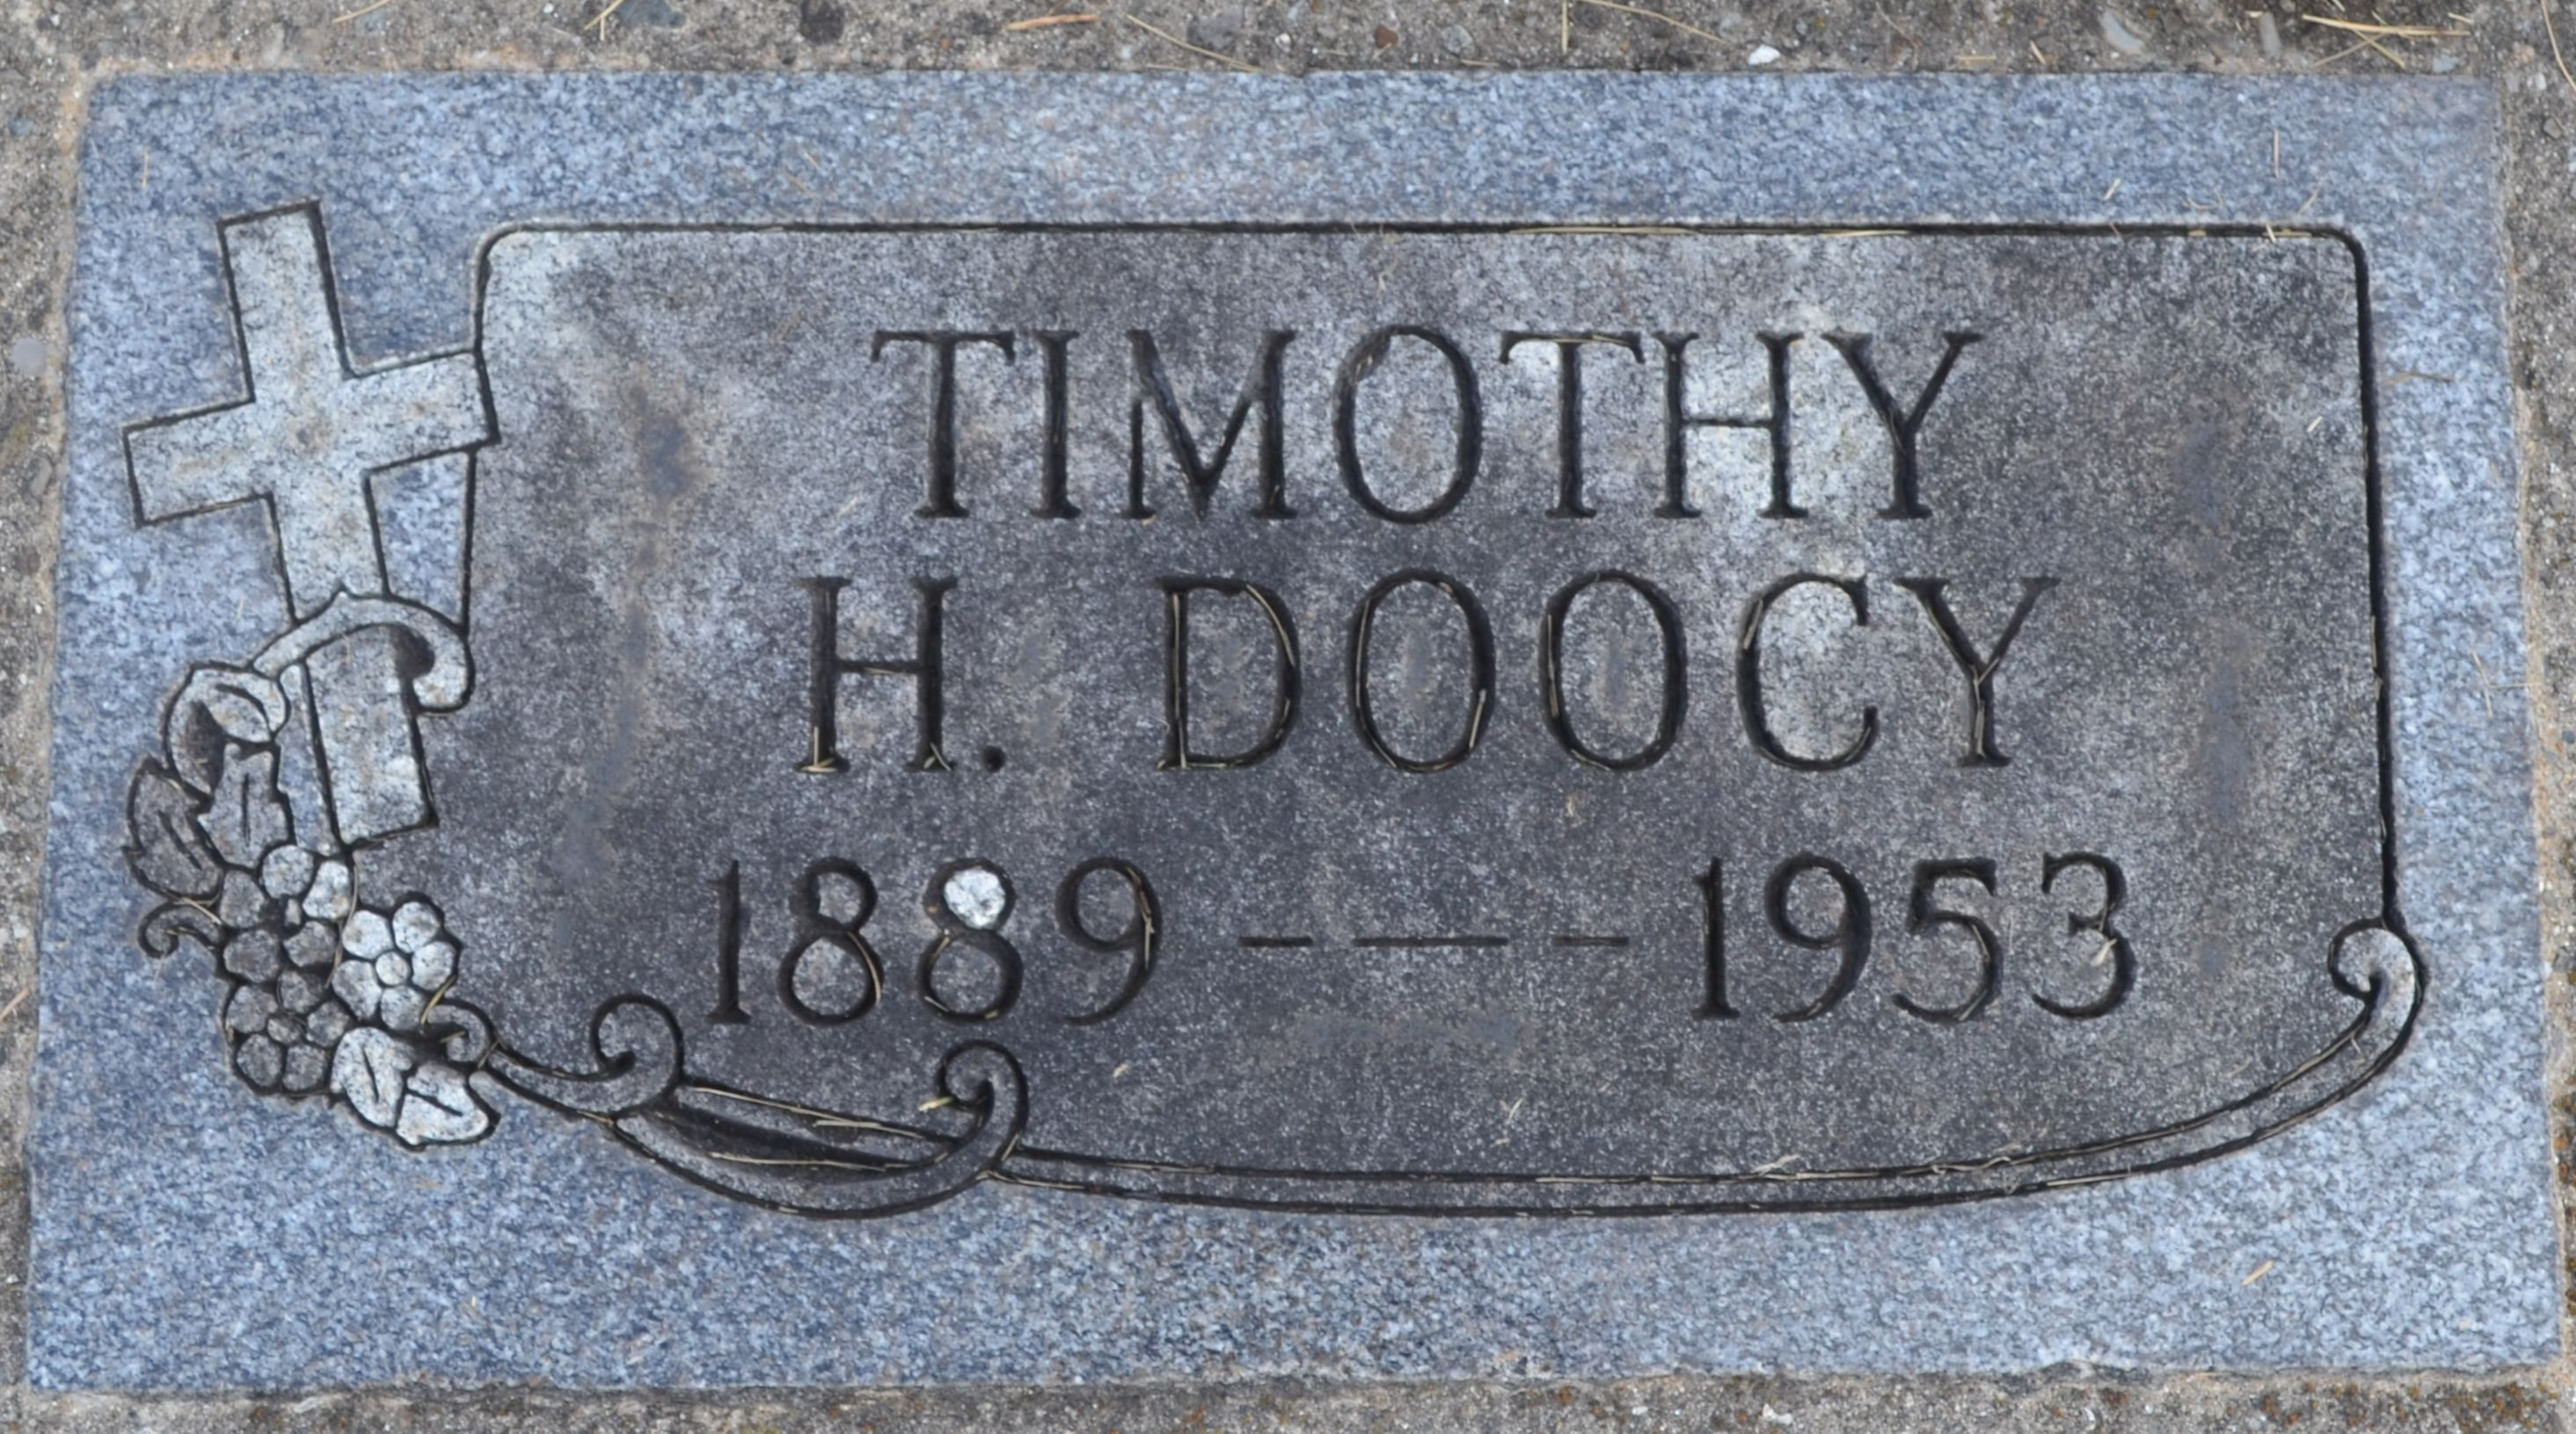 Timothy Hurley Doocy (1889-1953) - Find A Grave Memorial